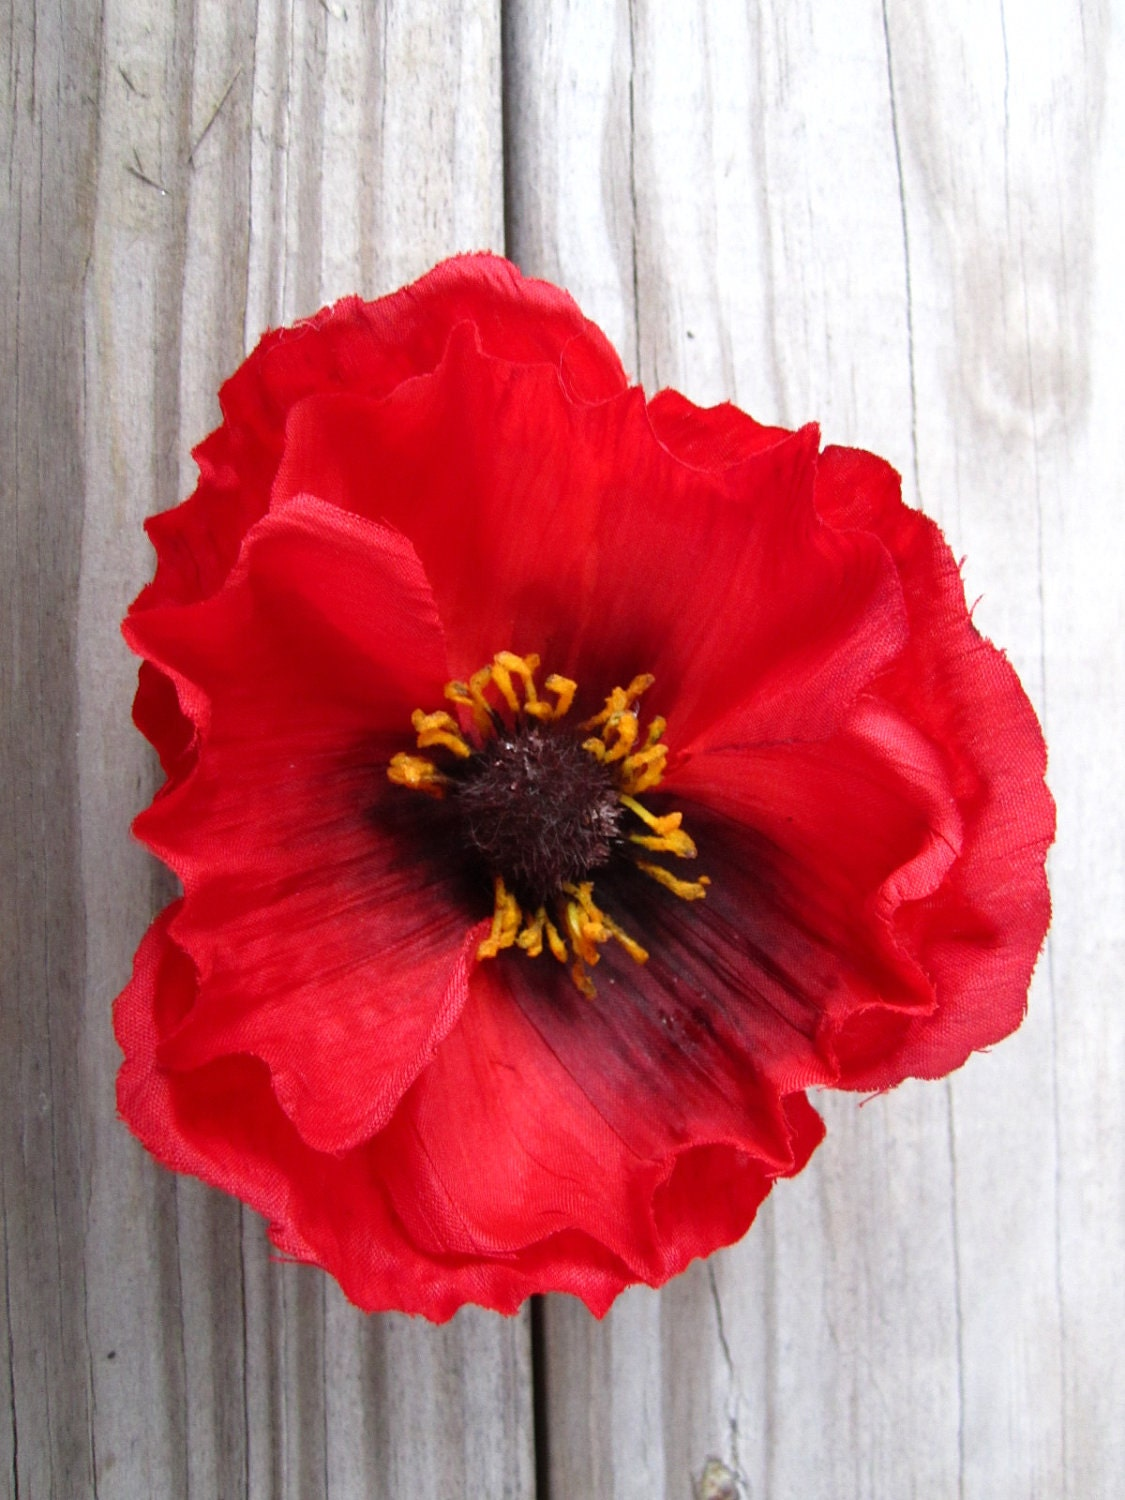 Red poppy flower hair clip or pin by itsashorething on Etsy